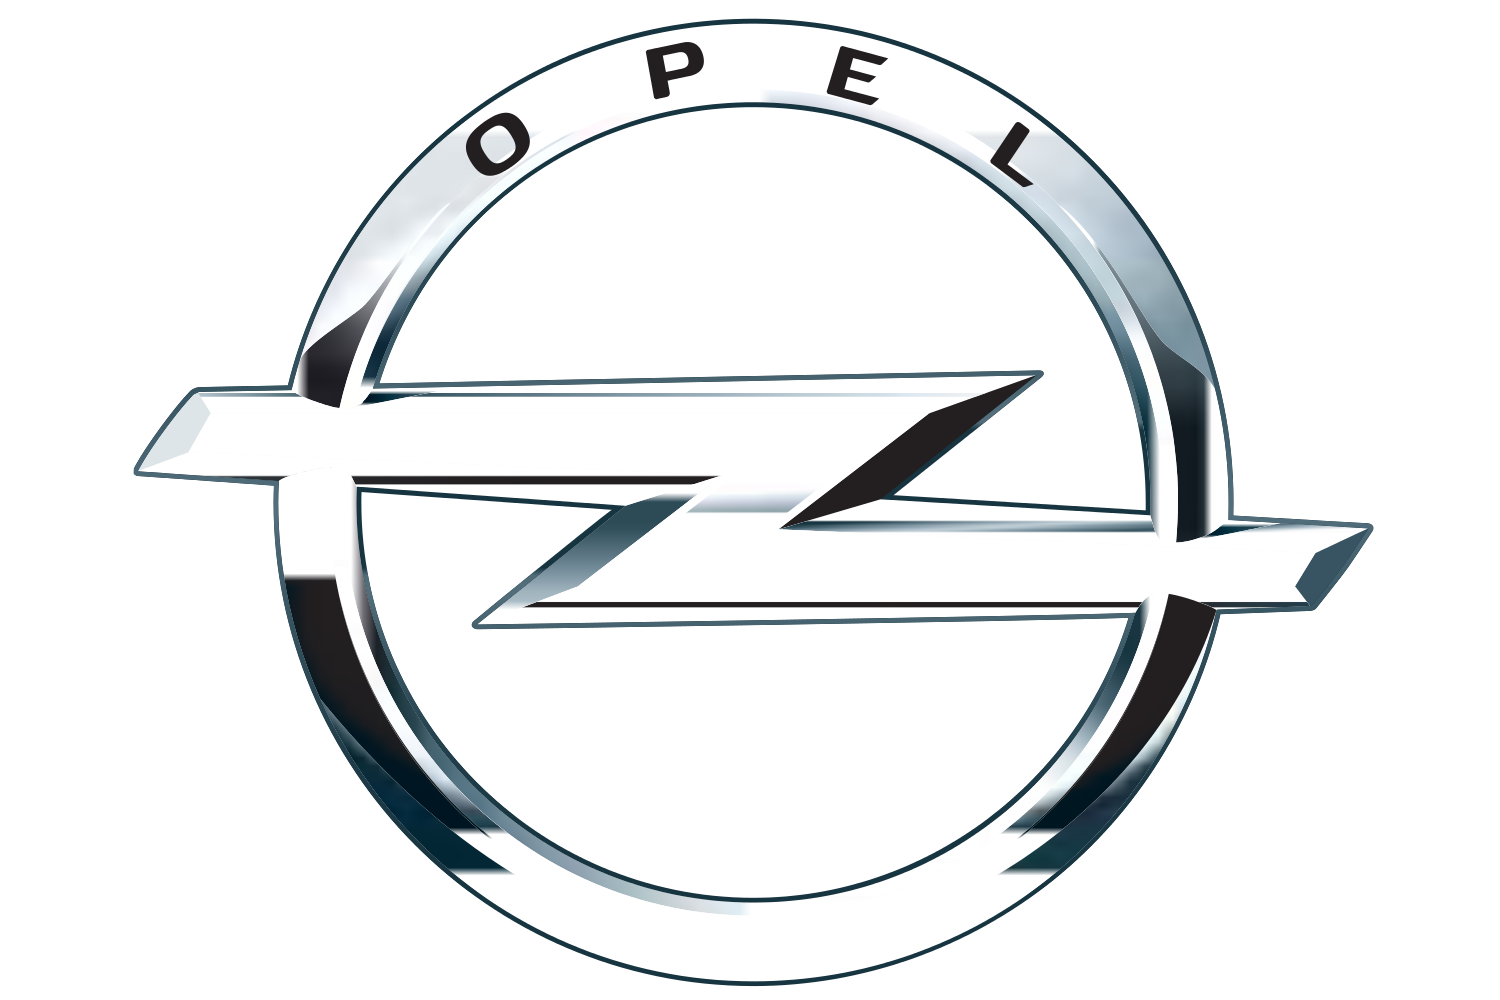 Opel Transparent PNG - Opel HD PNG